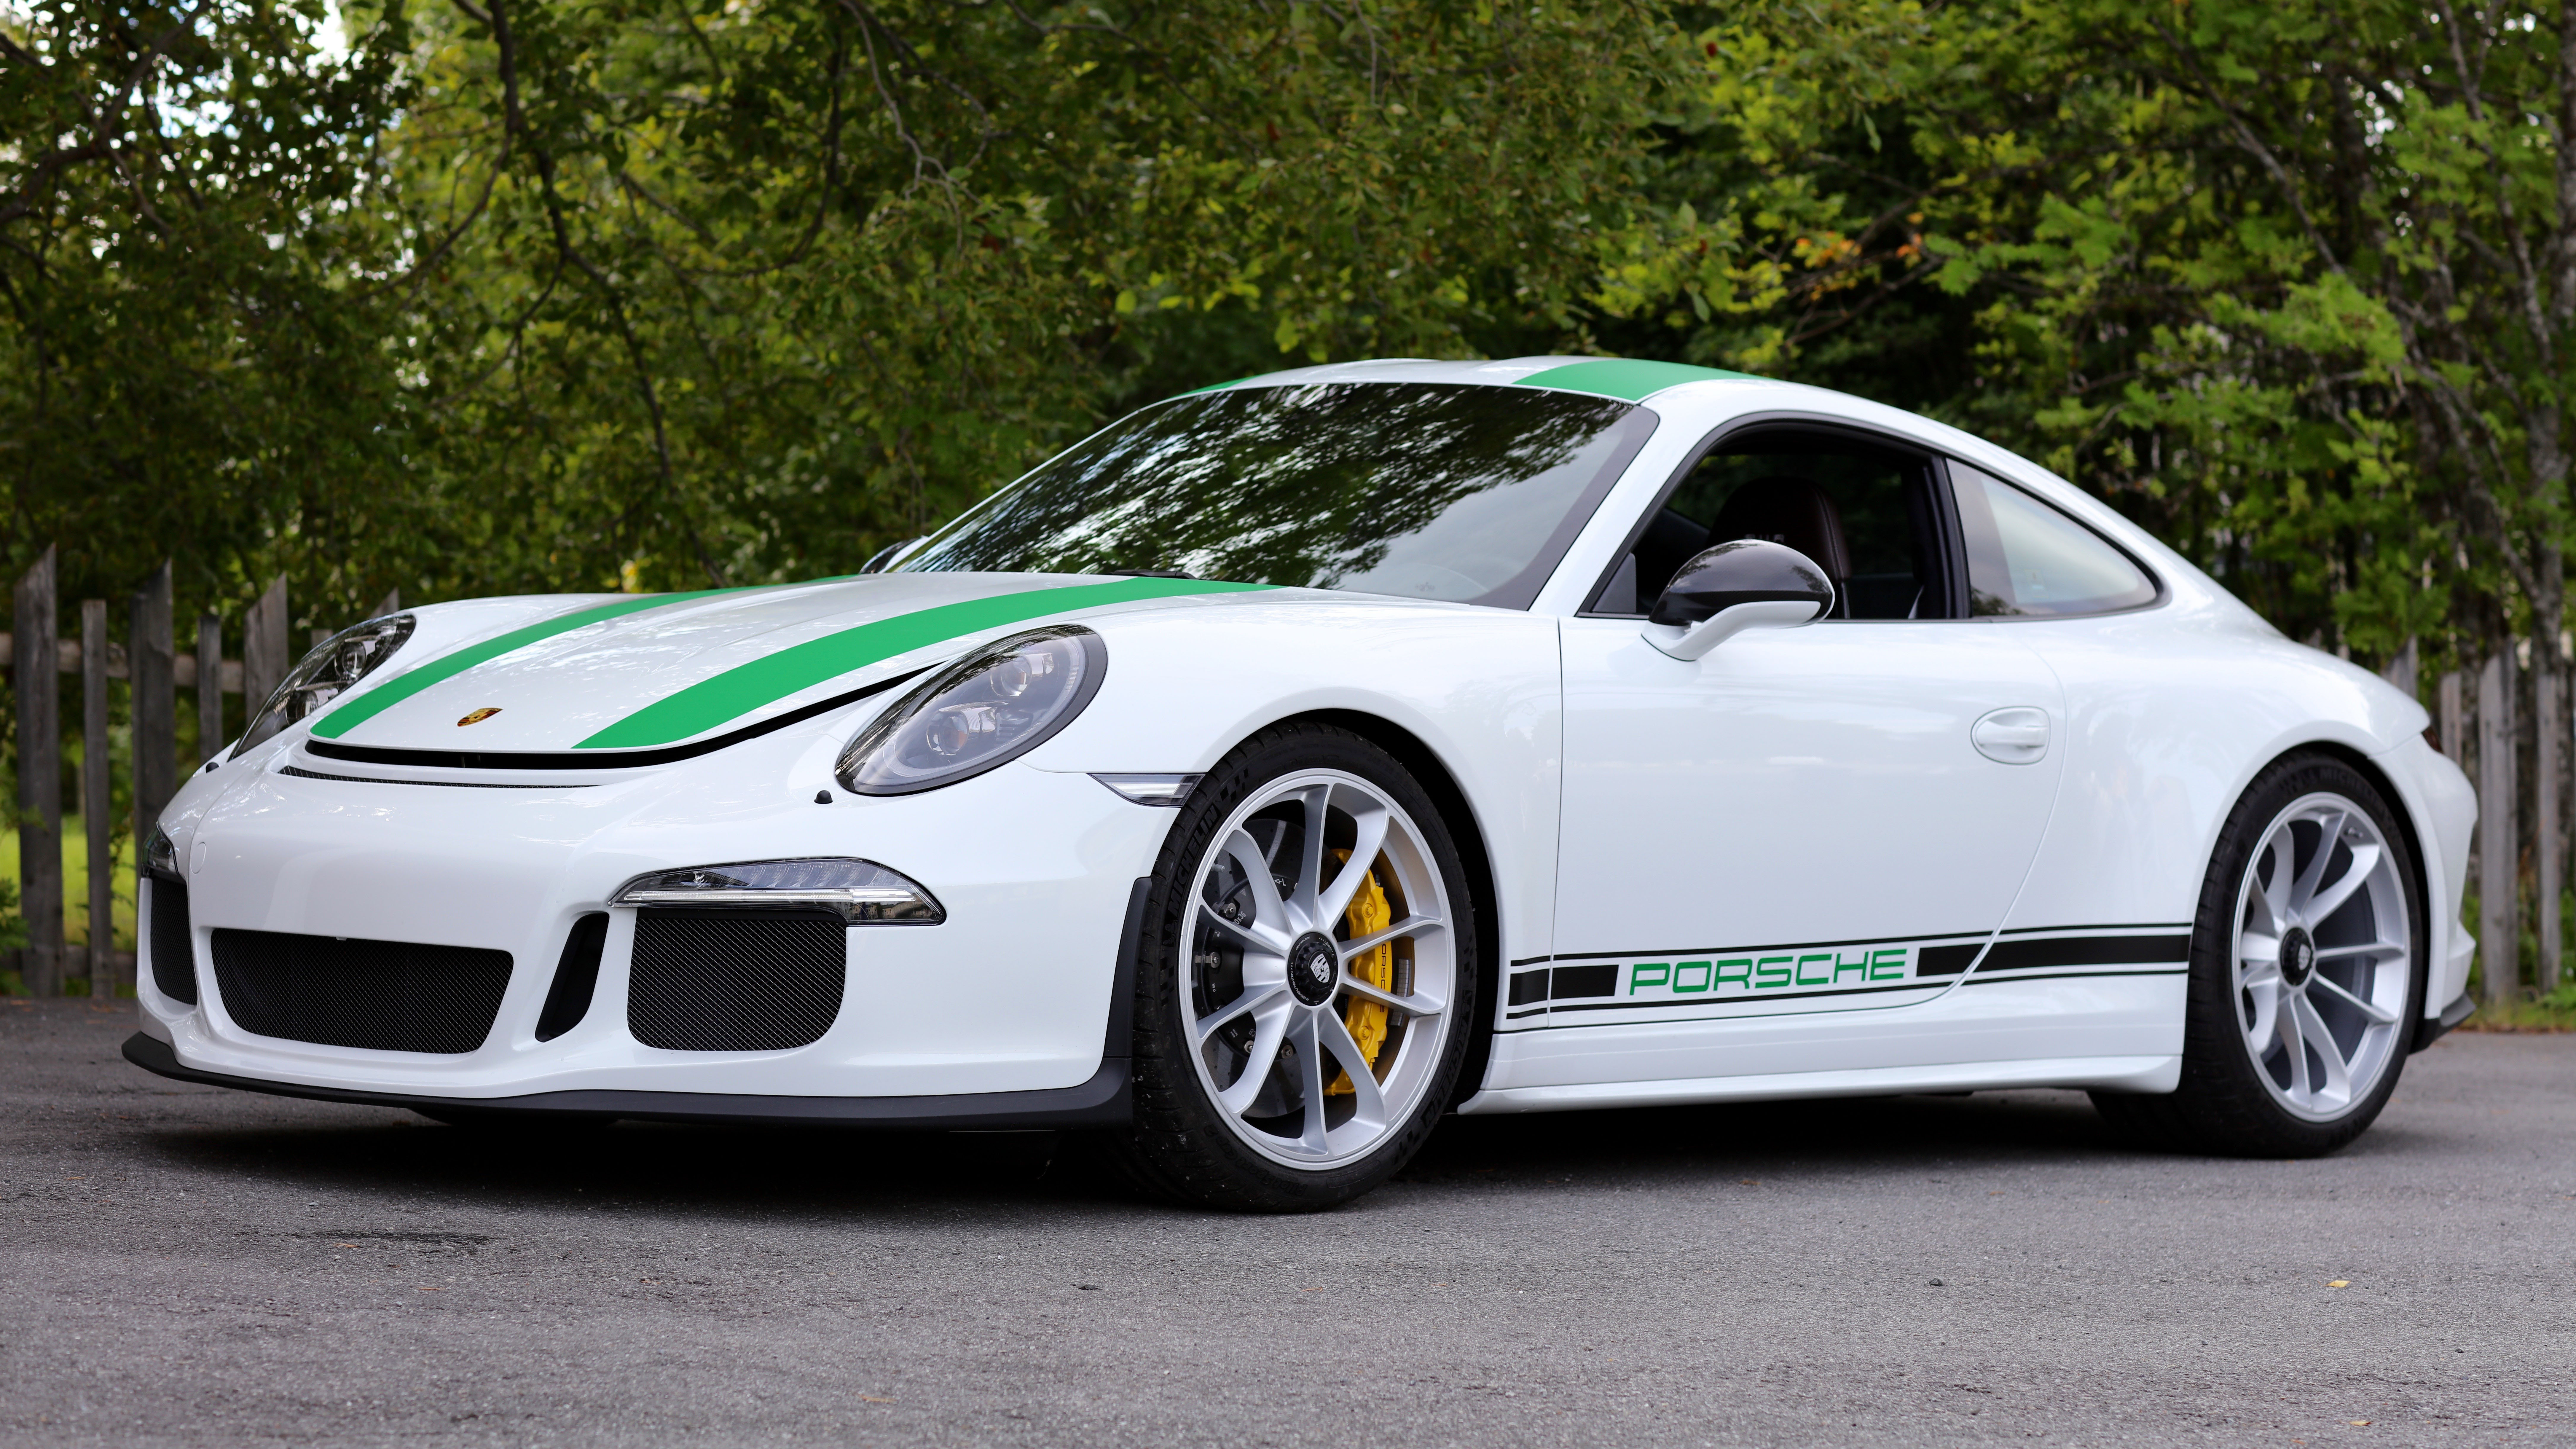 A Porsche 911R is up for auction. Already | Top Gear on